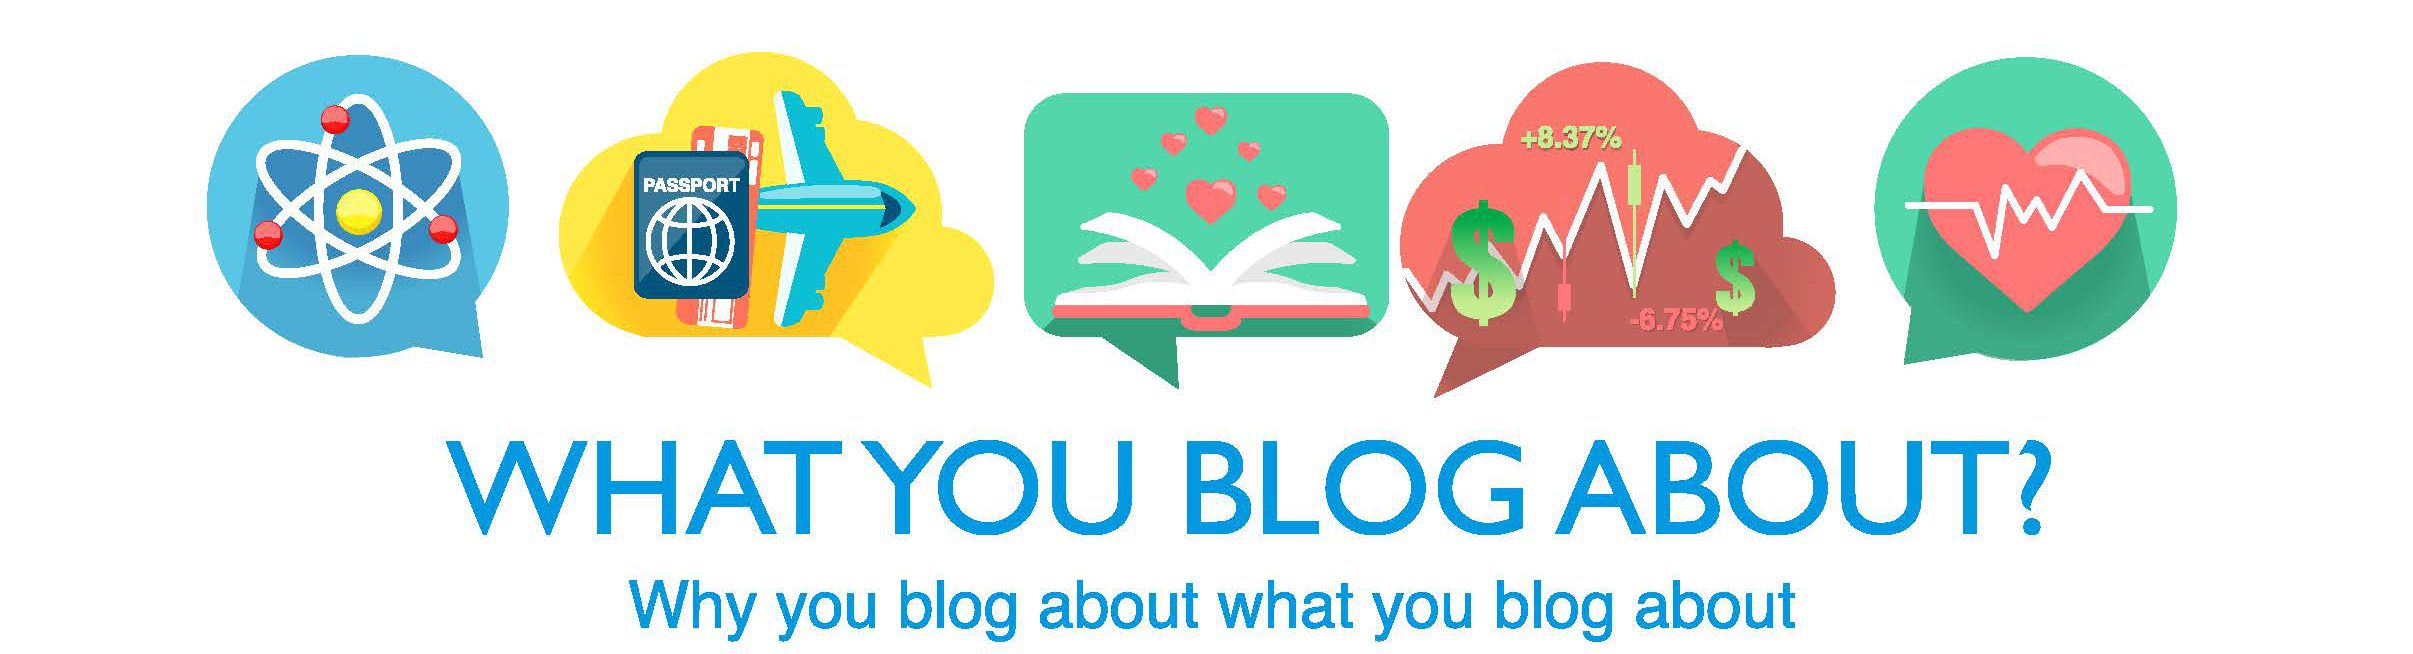 What You Blog About